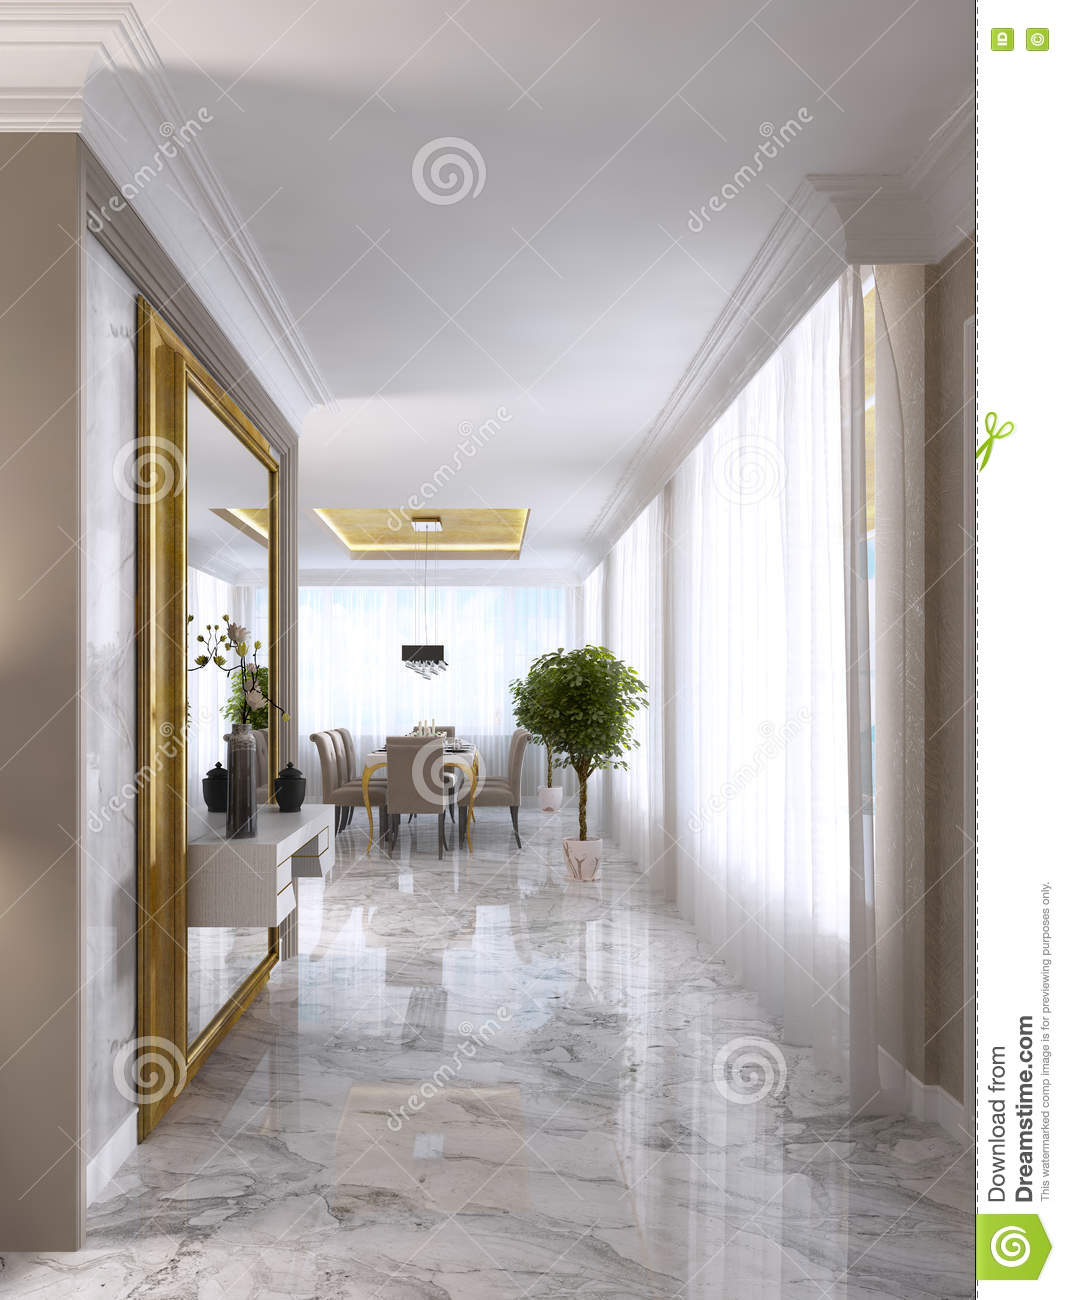 Luxury entrance hall art deco design stock image - Decoration d interieur marocain ...